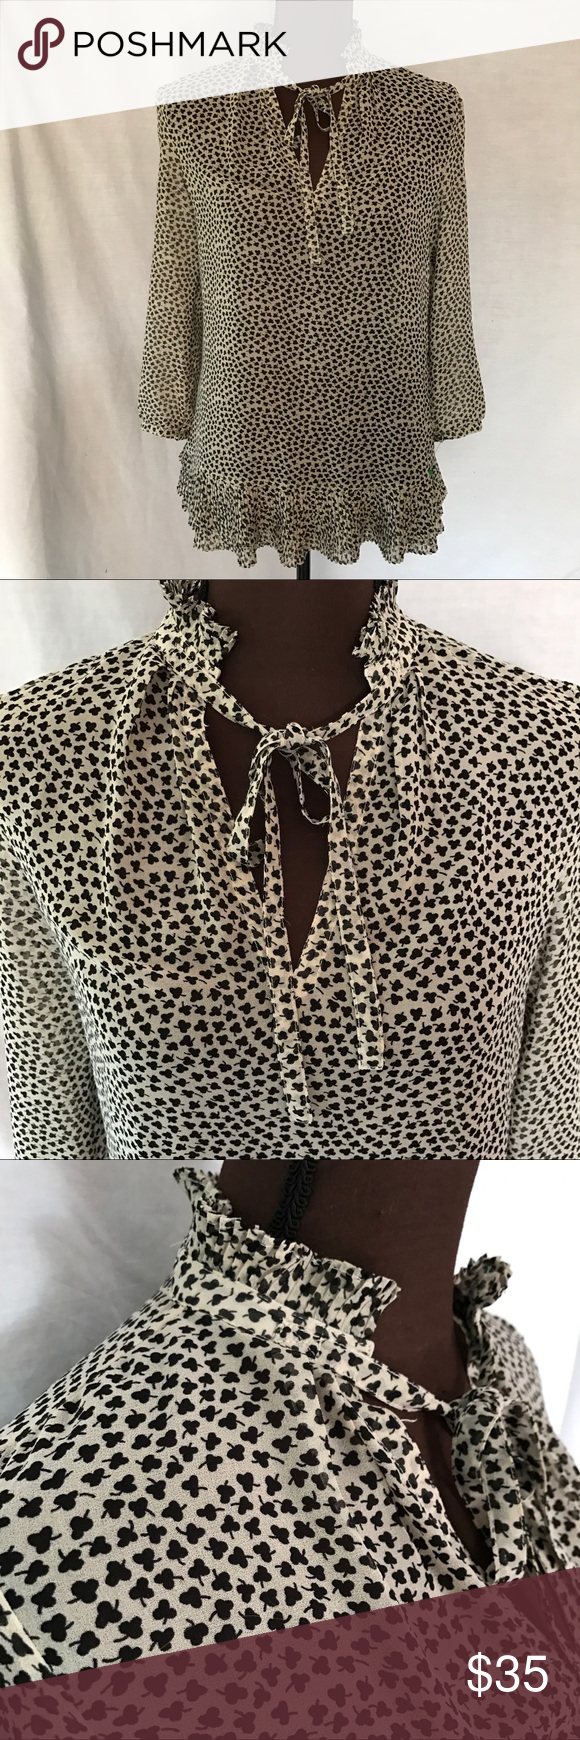 Anthro Portrait of a Girl Shamrock Sheer Blouse Semi-Sheer top dotted with little shamrocks from Portrait of a Girl. The neck has a short ruffle collar with a thin tie in the front. The bottom flairs out into a soft ruffle. EUC this shirt is free of major flaws like tears or stains.    ✅20% Off Bundles   ✅Questions Welcomed   ✅Reasonable Offers   ⛔️Trades   ⛔️Offline Transactions   Thrift is Sexy 💋👠 Anthropologie Tops Blouses